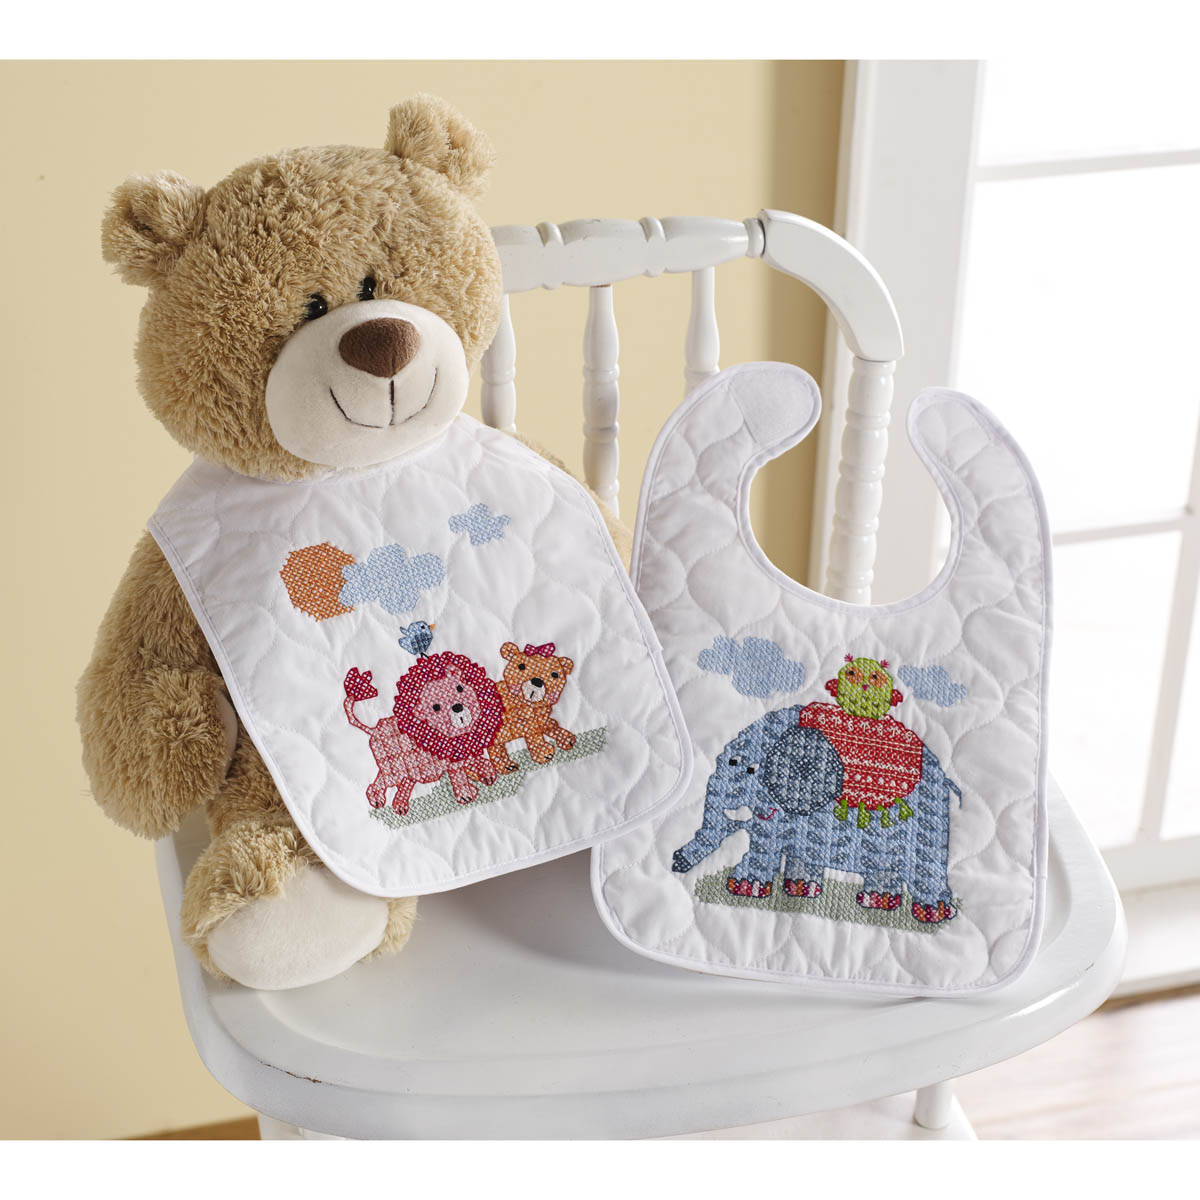 Bucilla ® Baby - Stamped Cross Stitch - Crib Ensembles - Two By Two - Bib Pair Kit